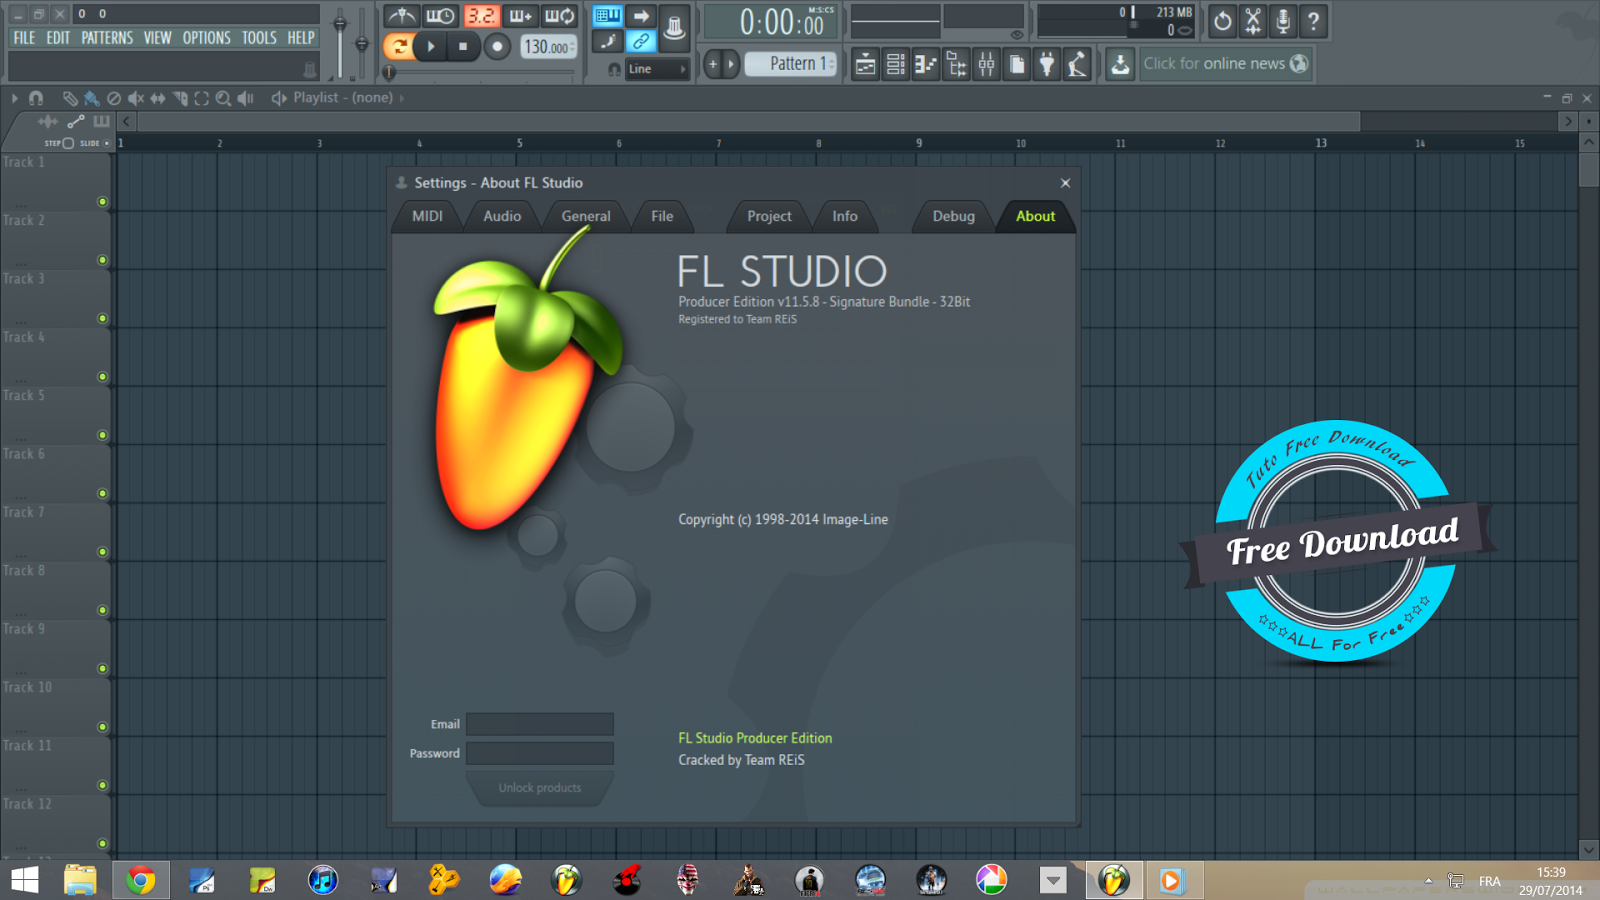 Download Crack Fl Studio 12 Alpha (11.5.8)  Download Crack Fl Studio 12 Alpha (11.5.8) Untitled 1